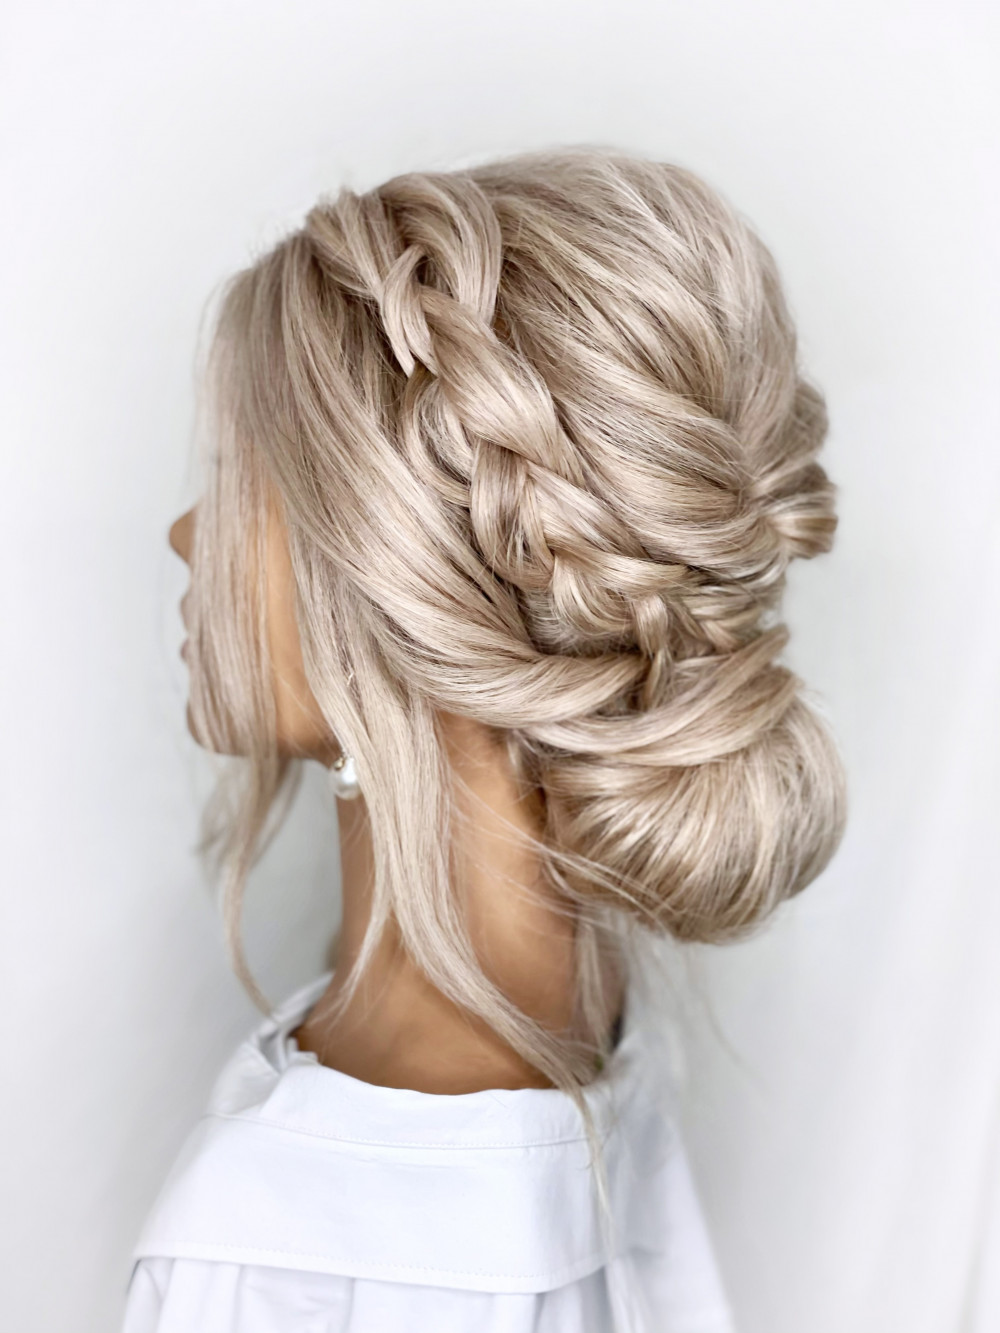 - Make Me Bridal Artist: Parisiumhair. #blonde #lowupdo #bridesmaidhair #braidedupdo #bridesmaid #softupdo #texturedupdo #bohemian #boho